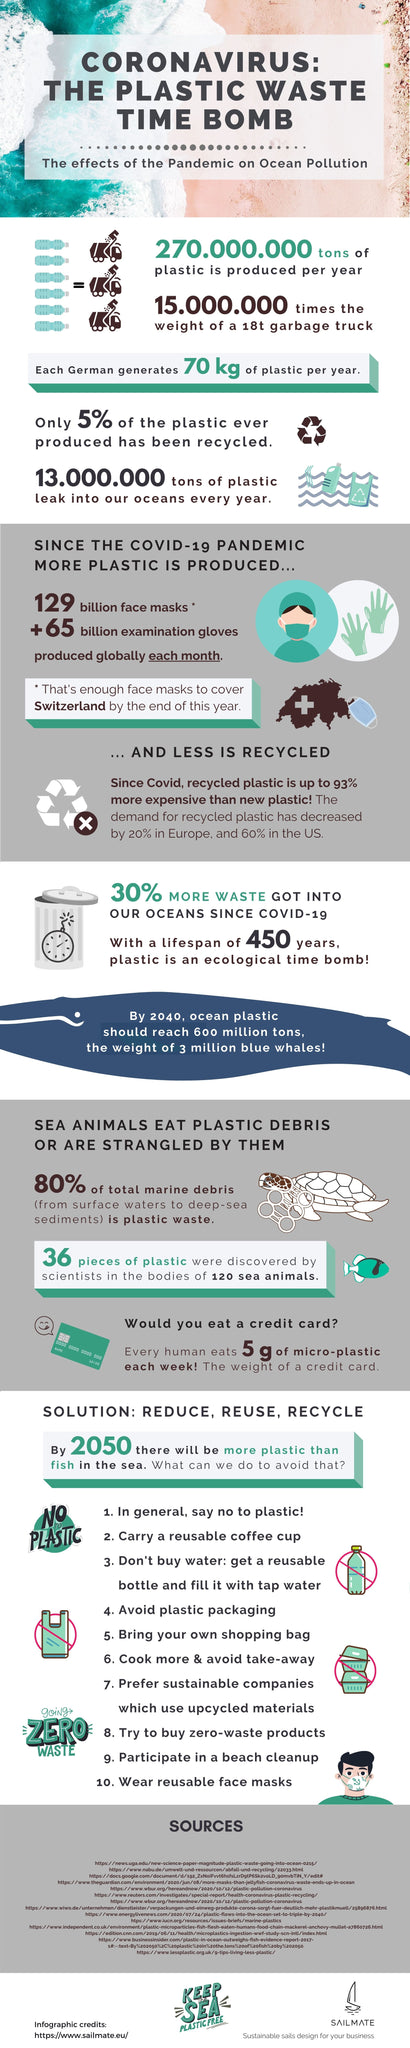 Infographic by Sailmate: Covid19 the plastic waste time bomb